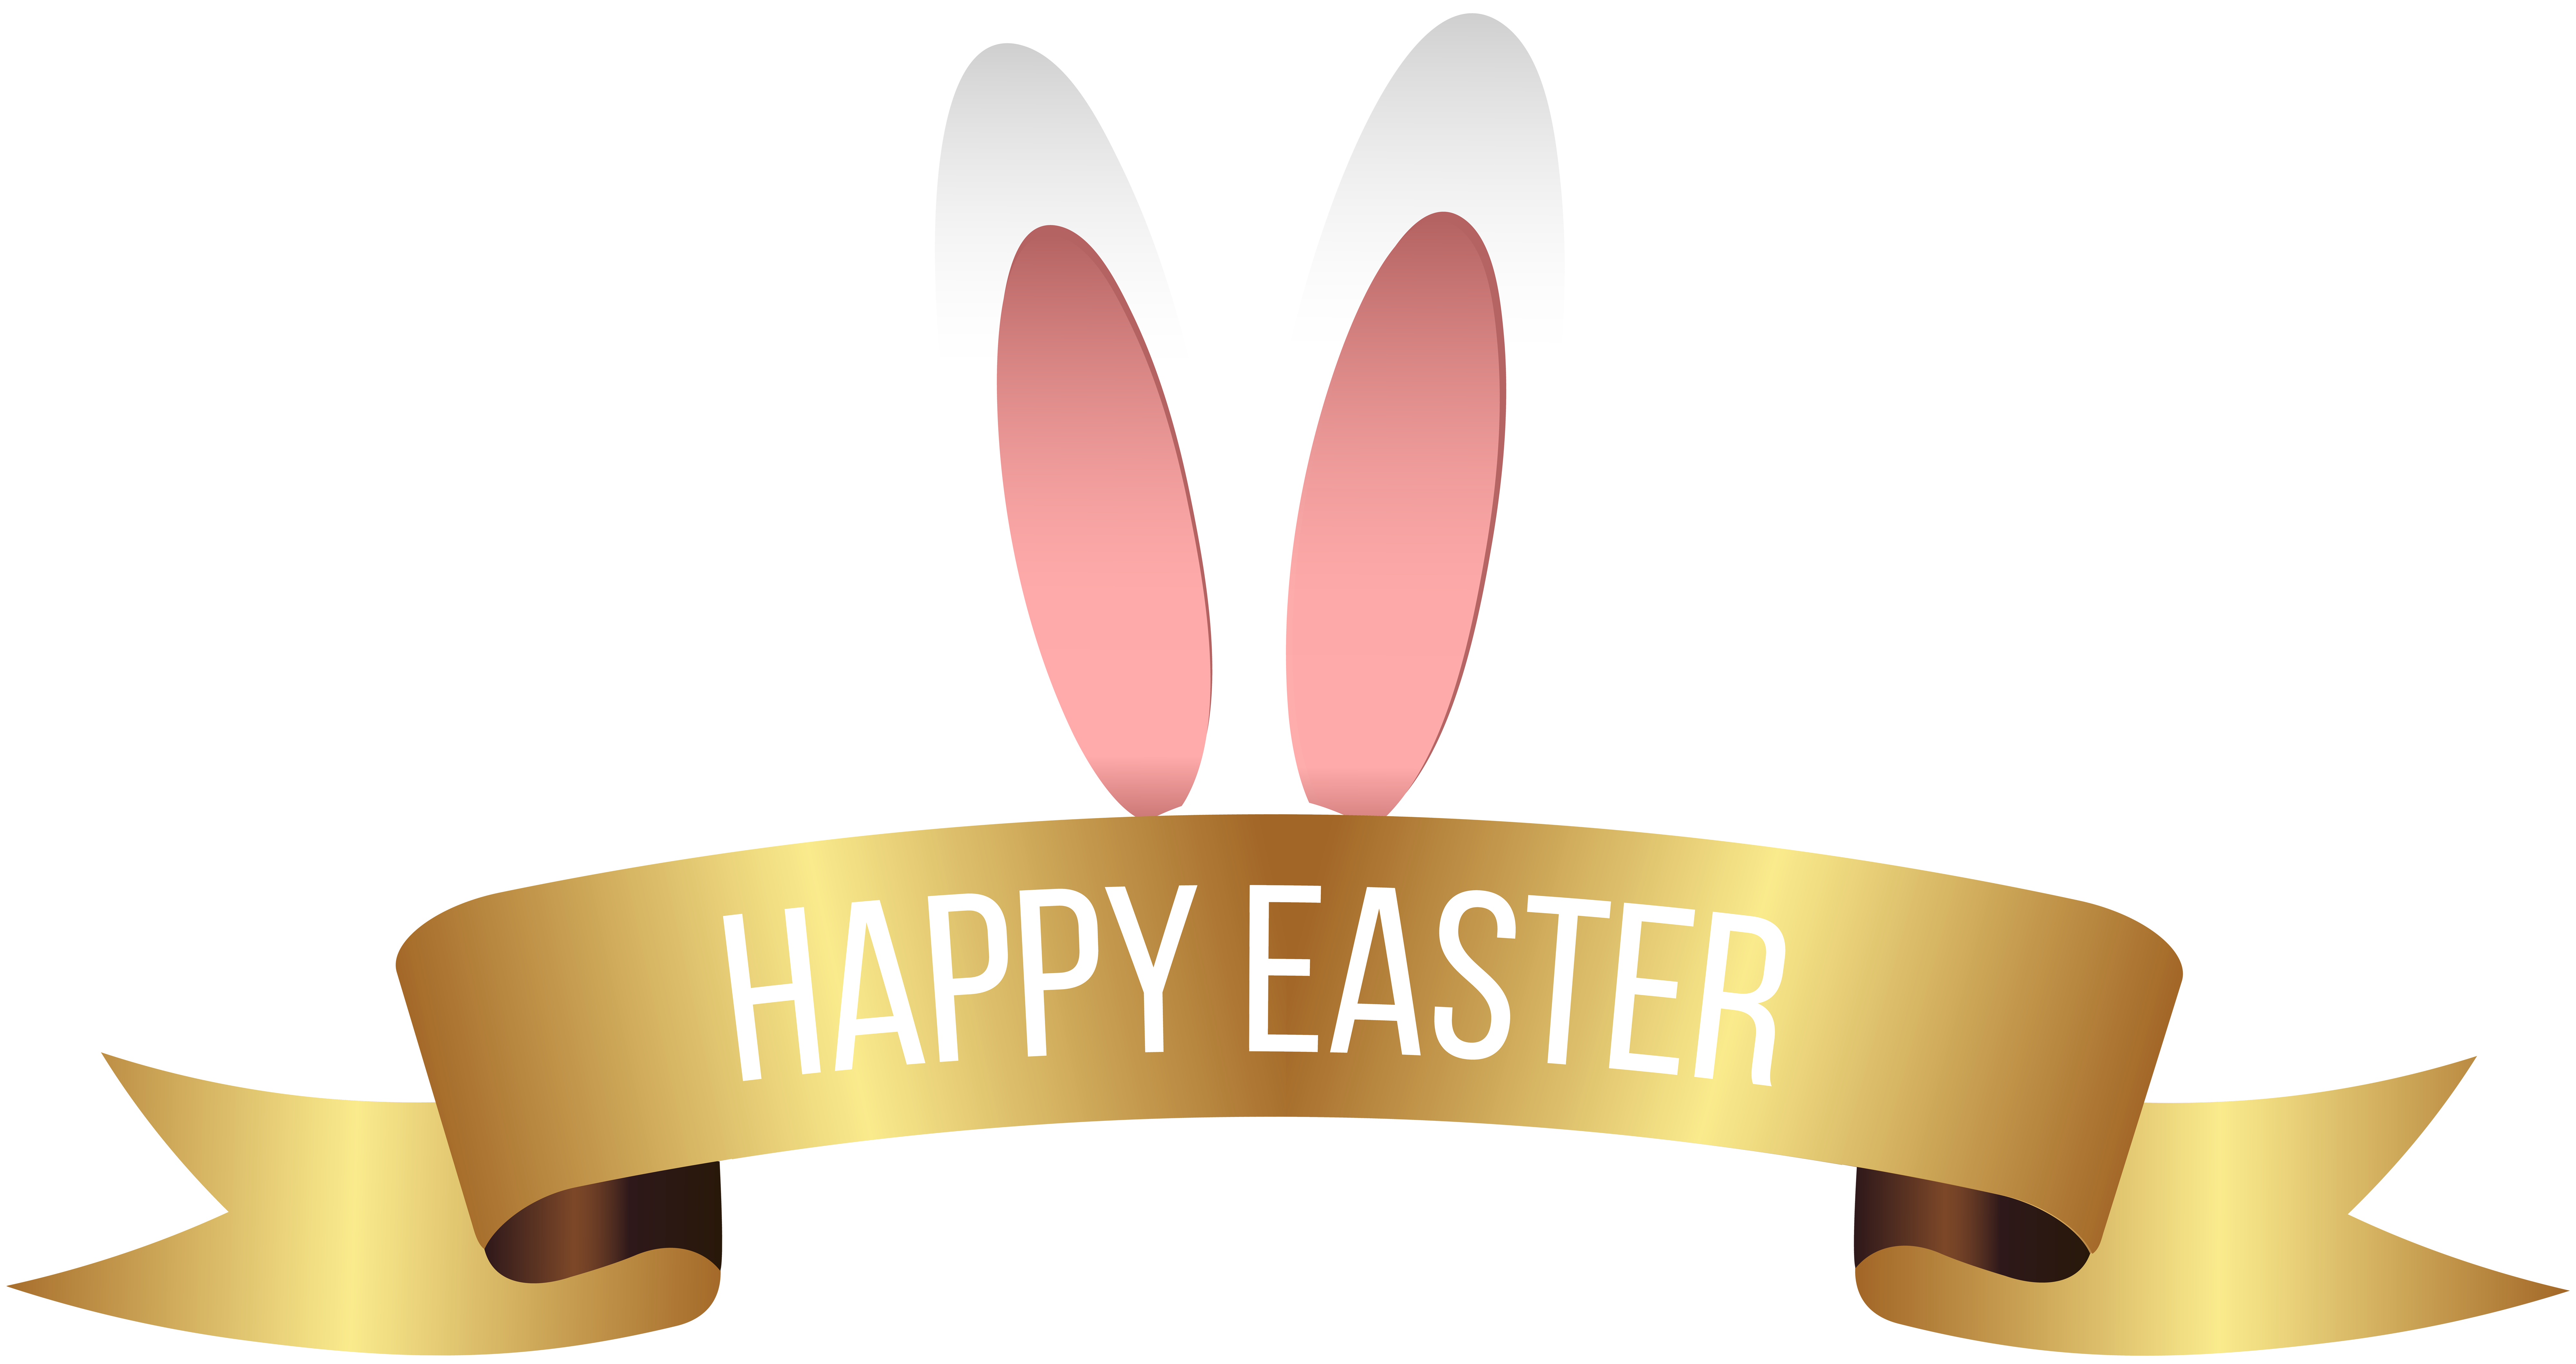 Happy easter banner png. Transparent clip art gallery